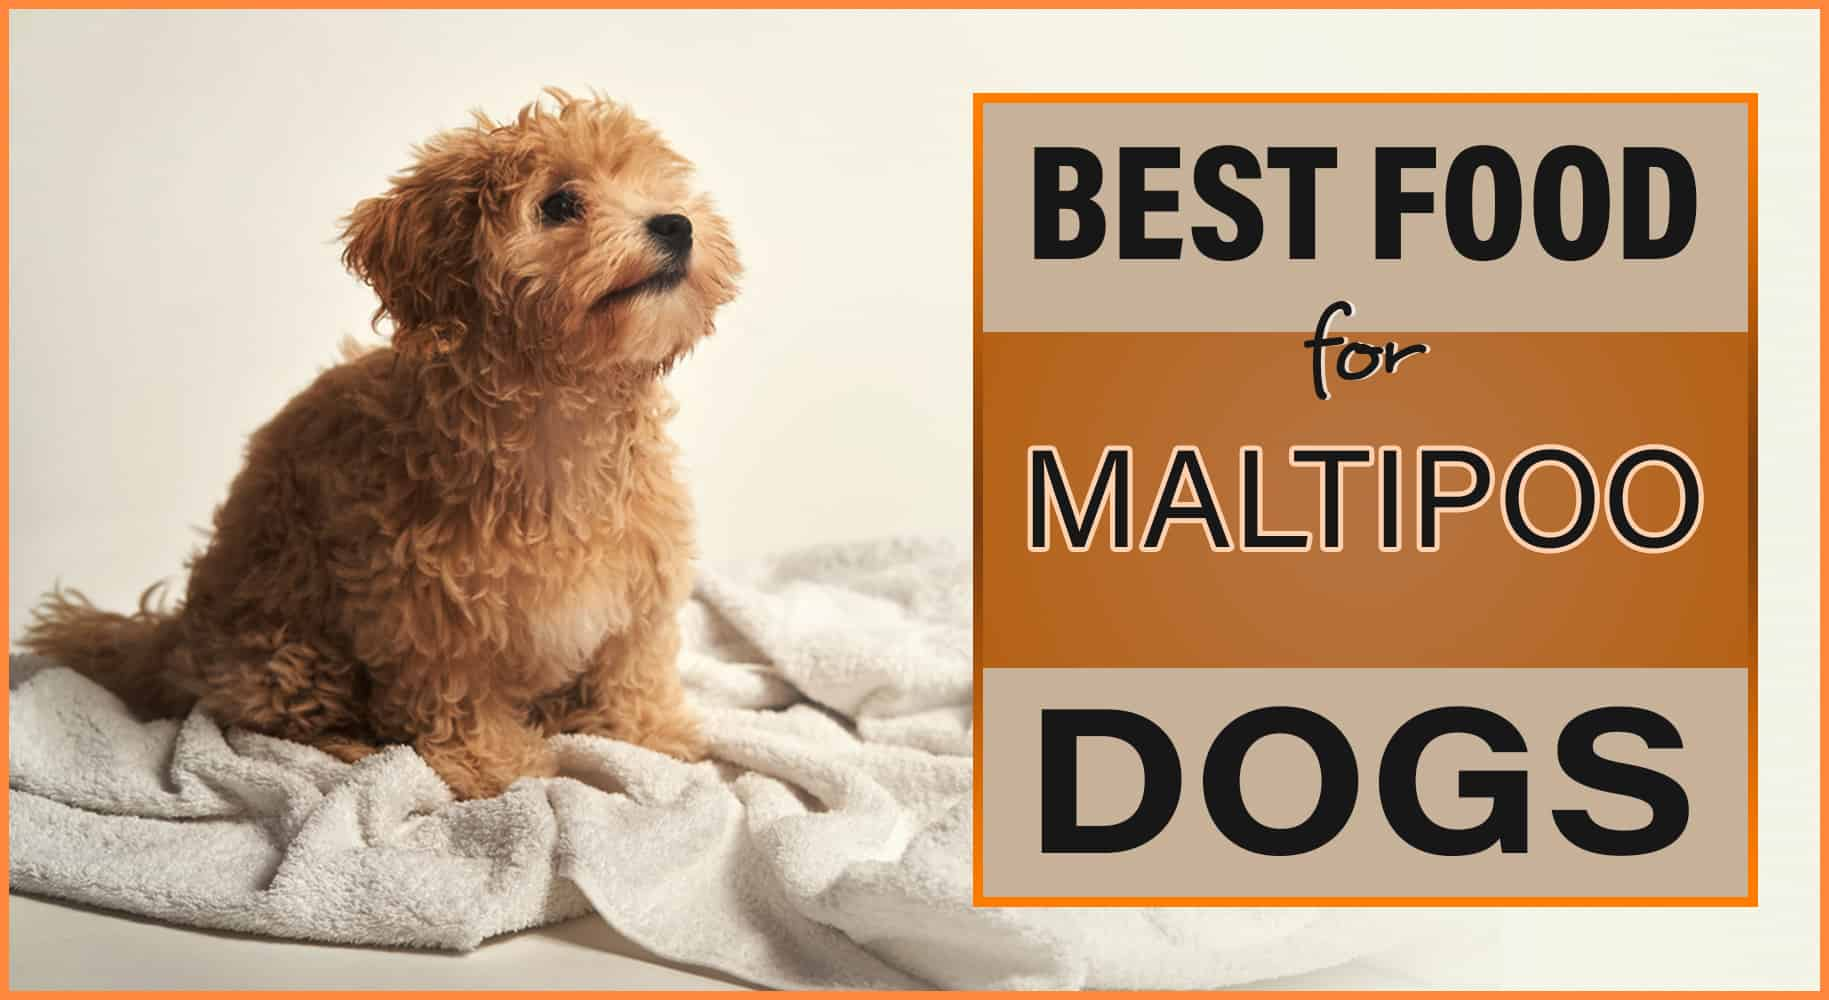 Best Dog Food for Maltipoos